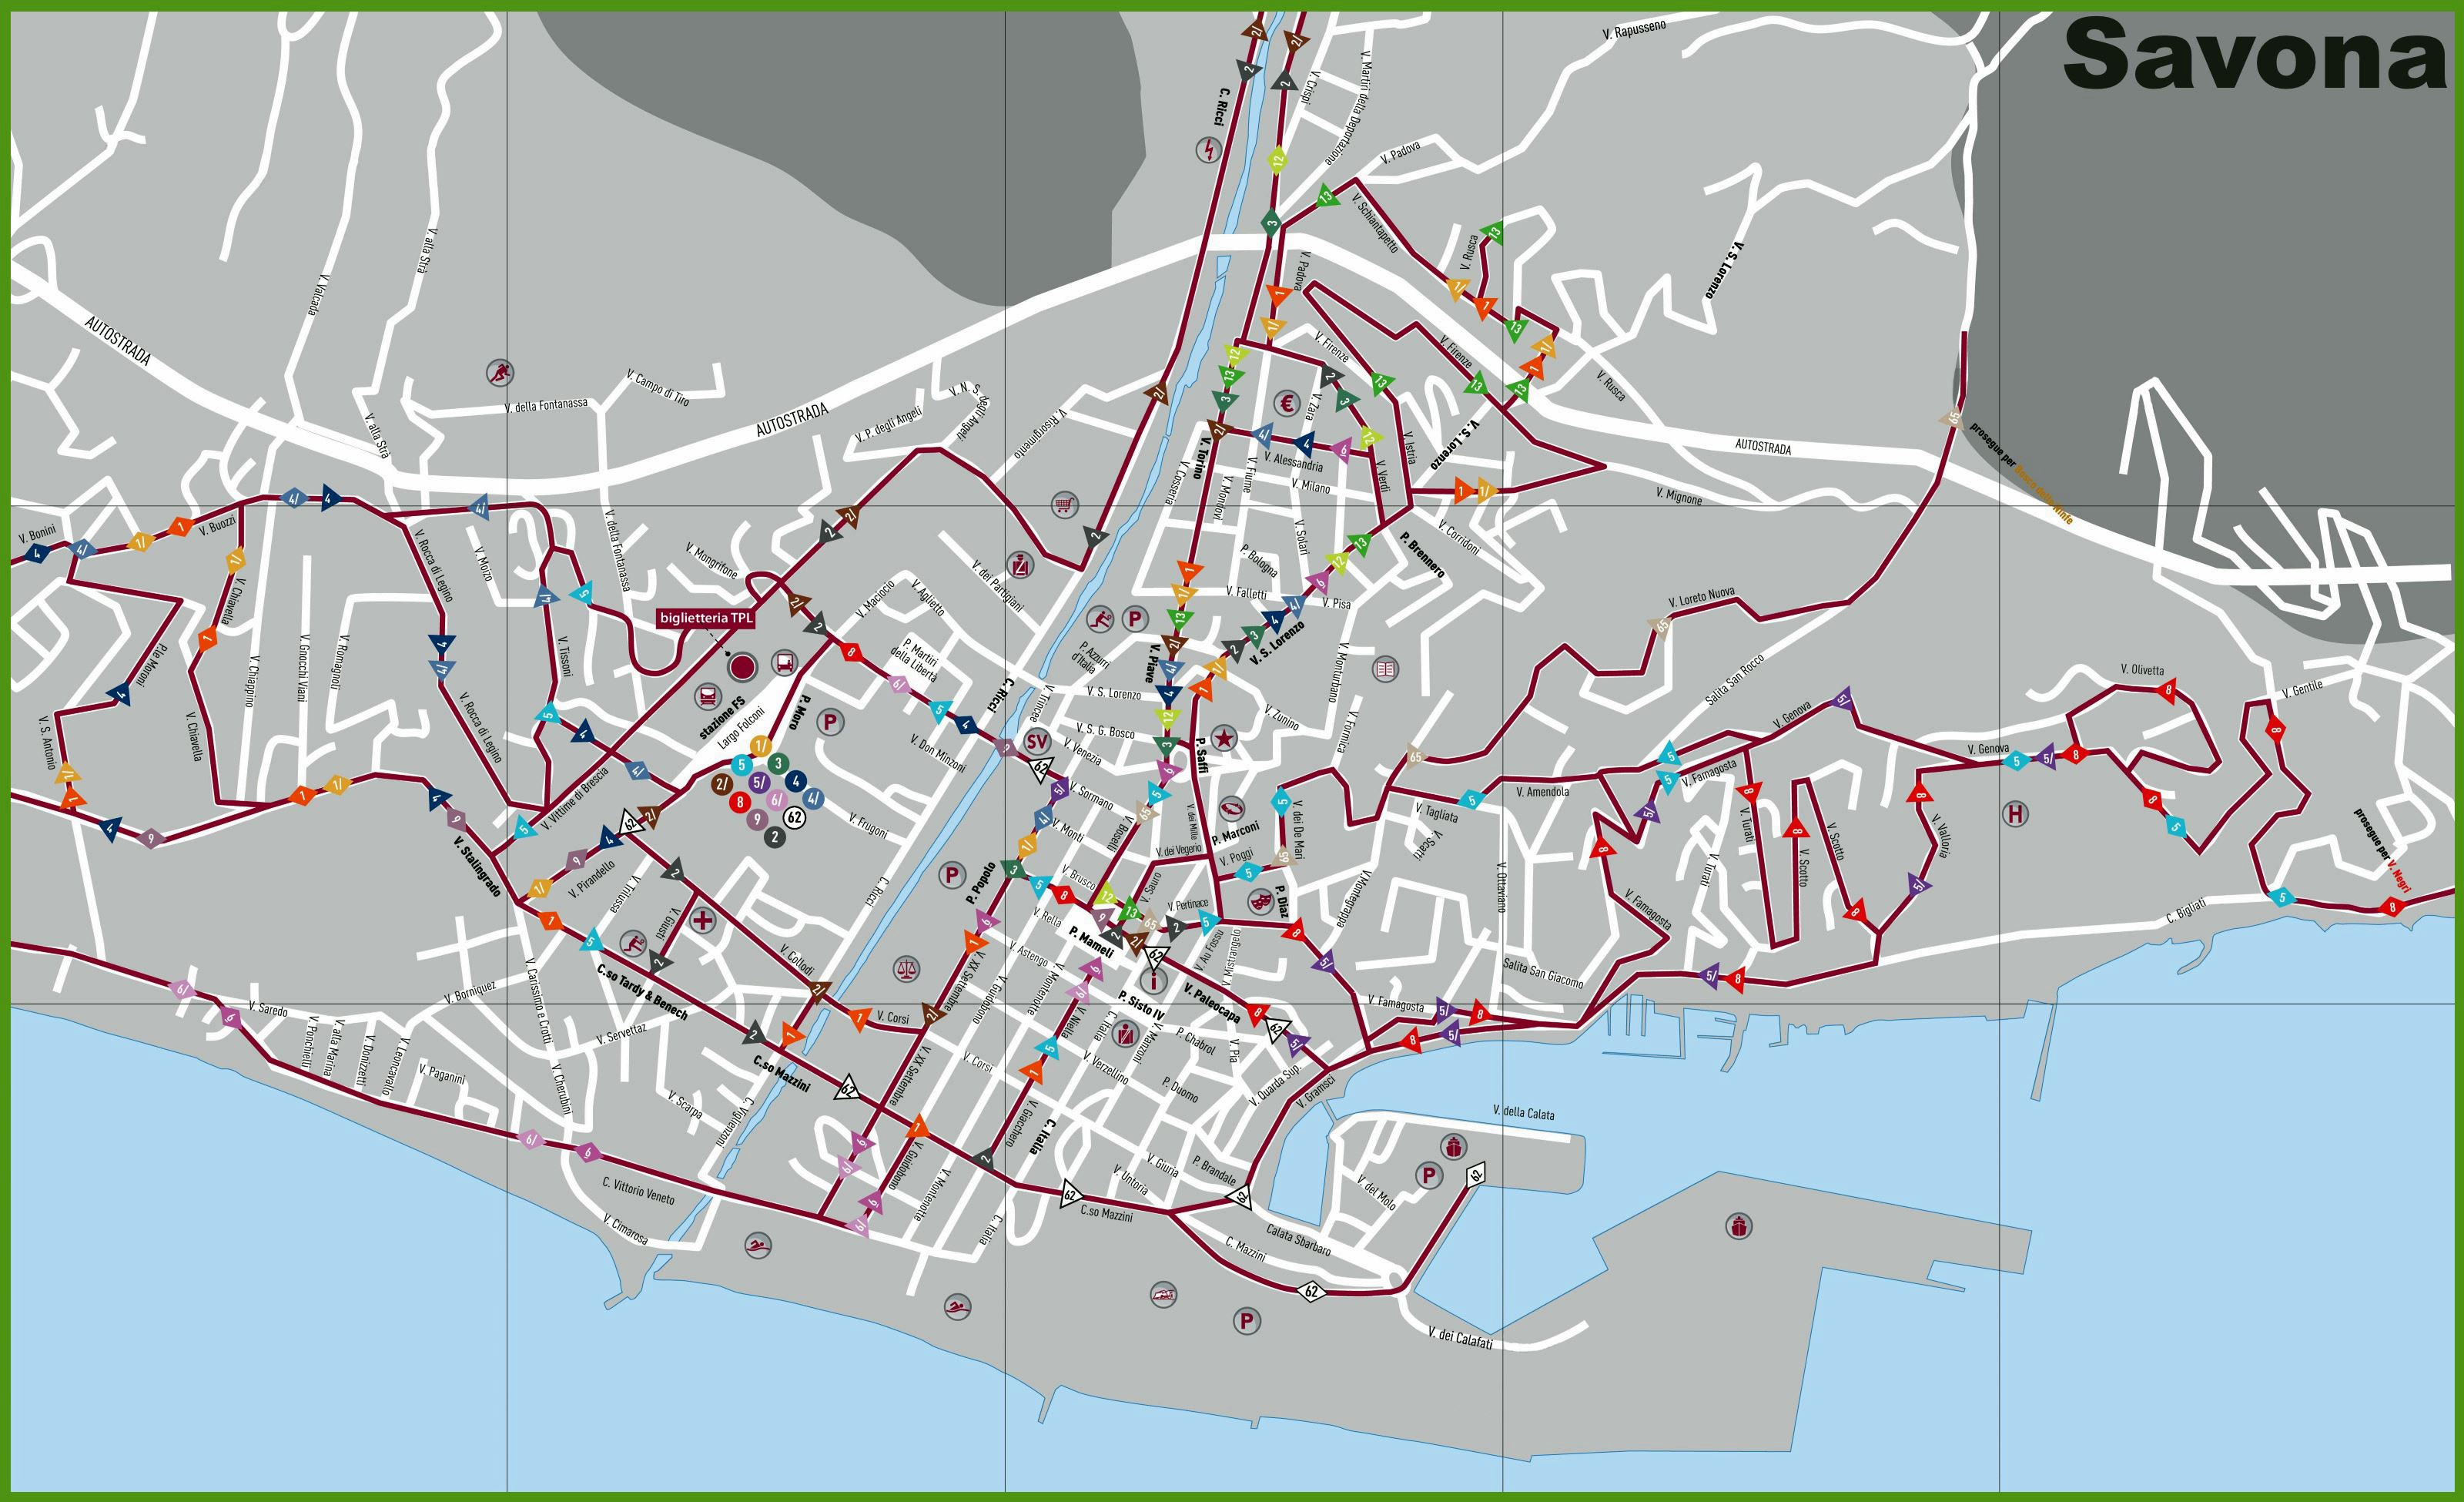 Large Savona Maps for Free Download and Print HighResolution and